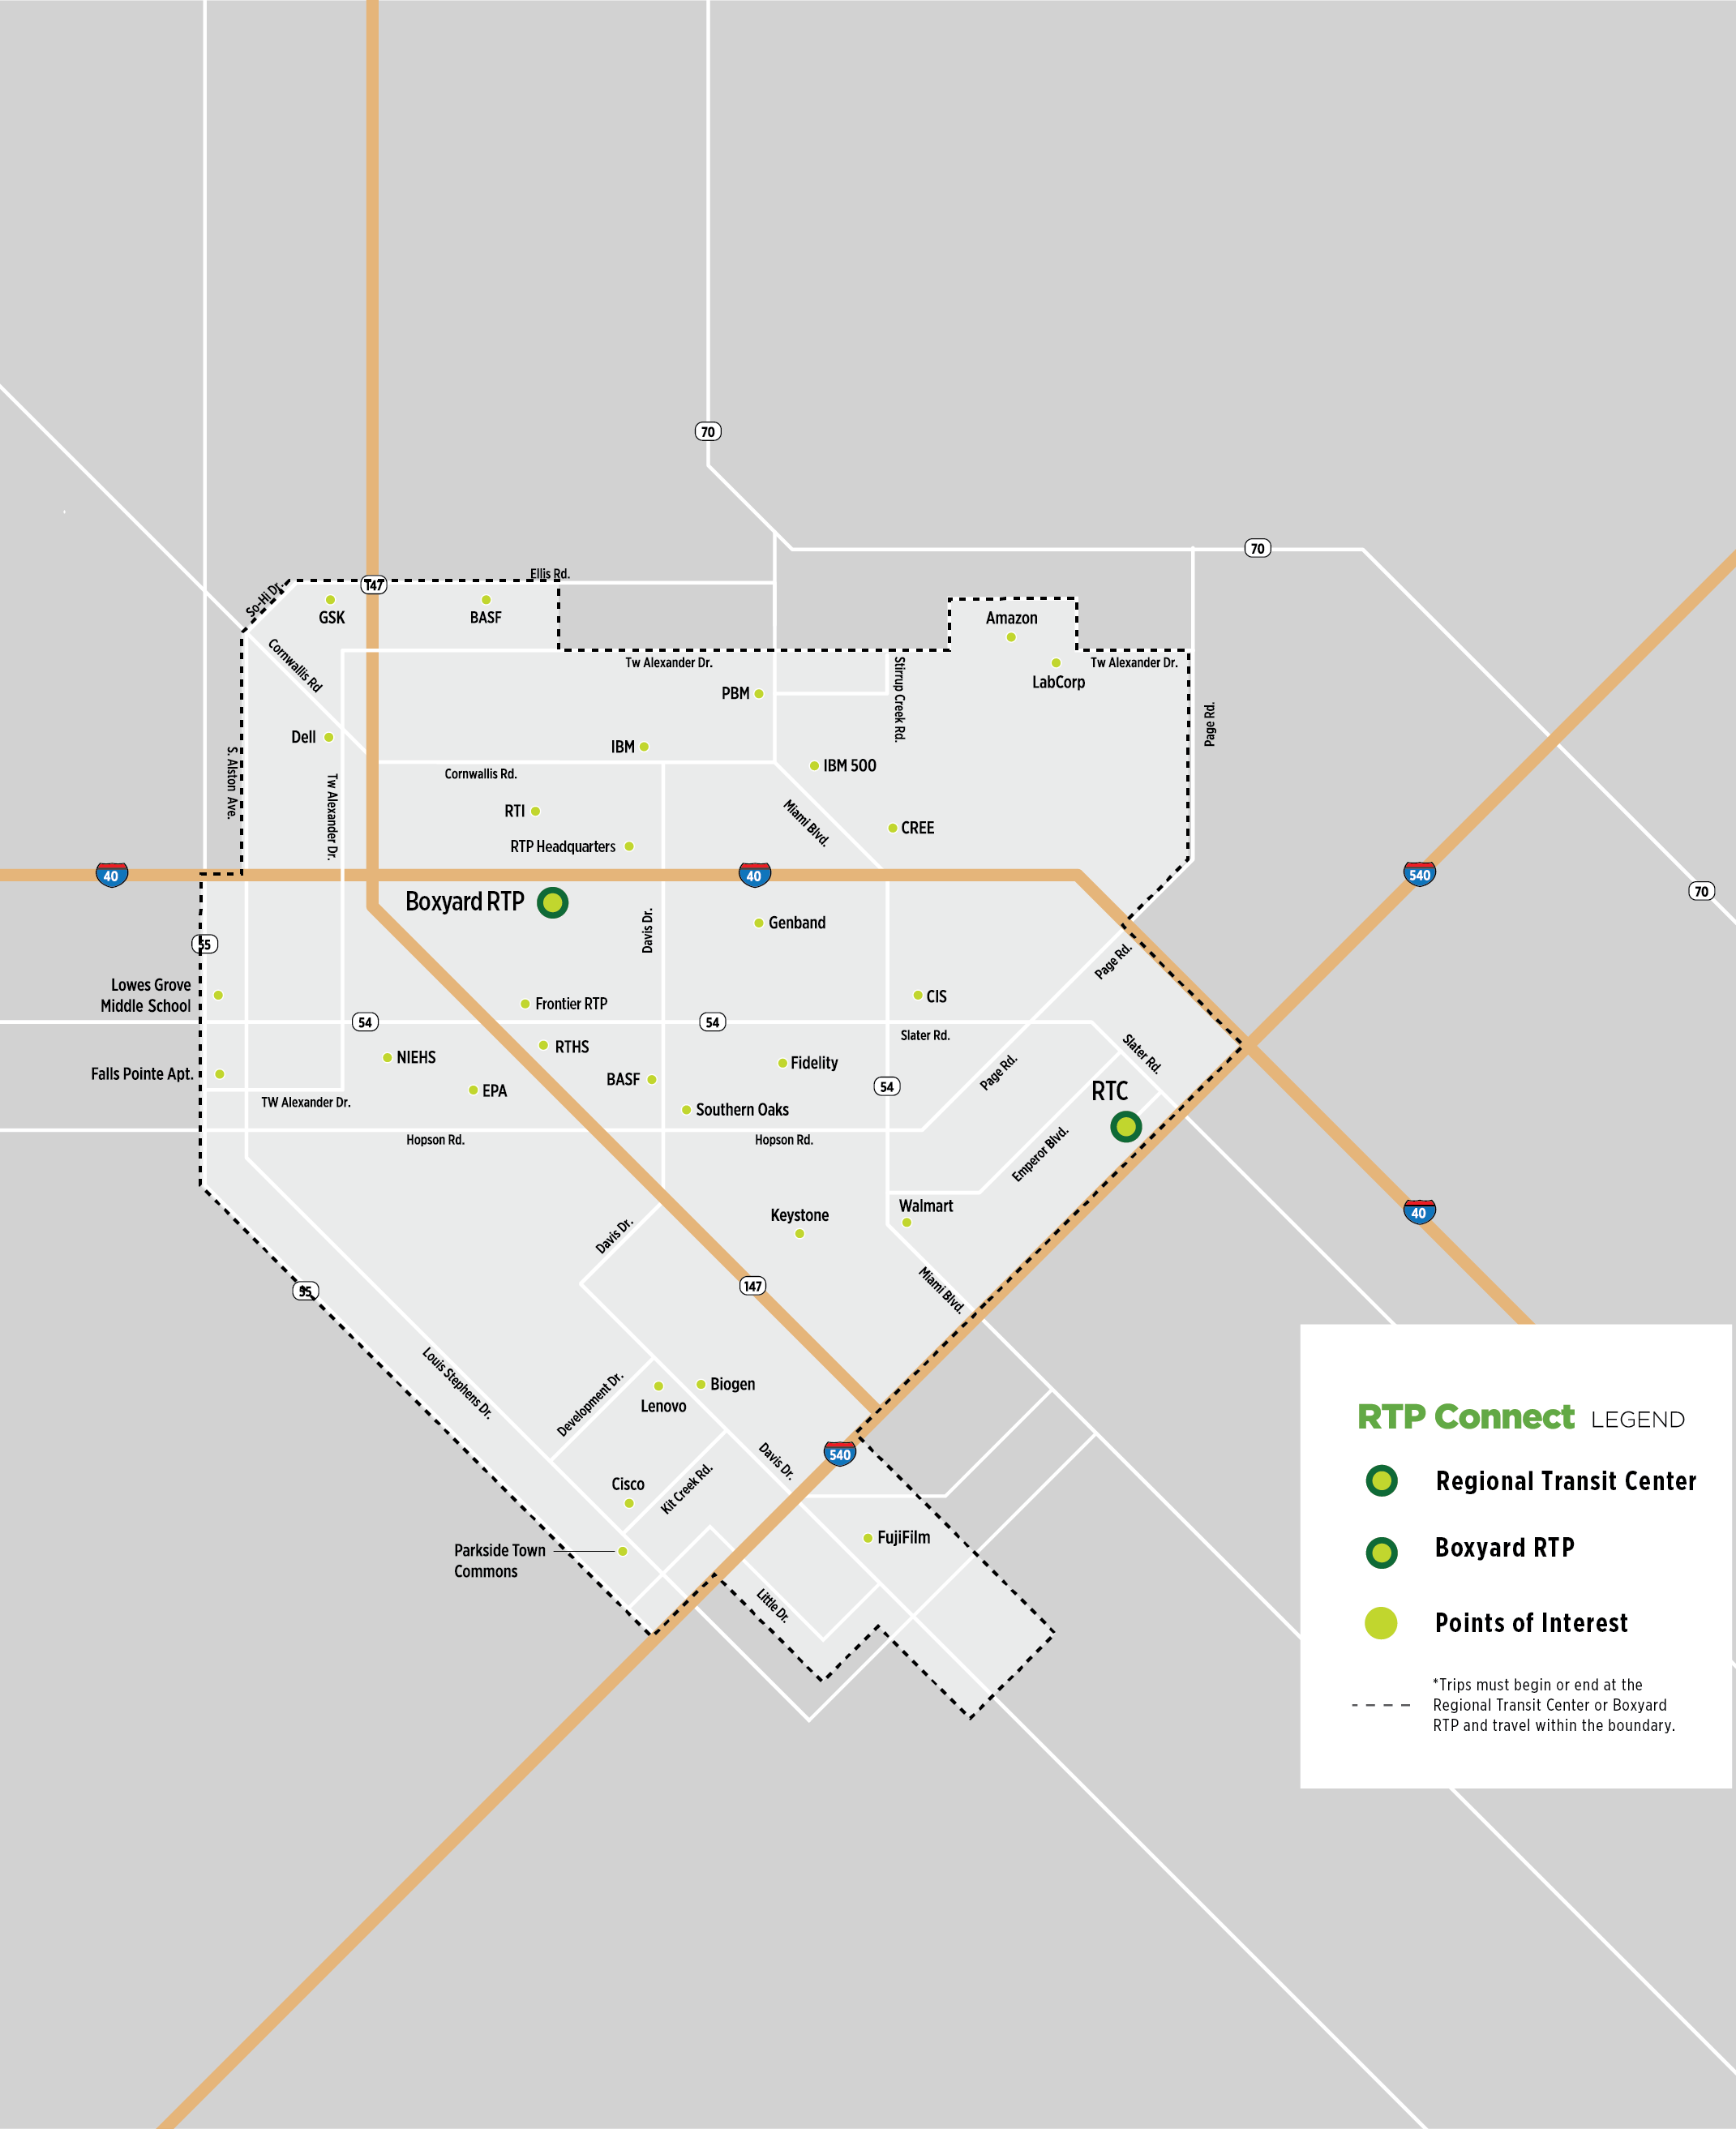 RTP Connect Map 2021